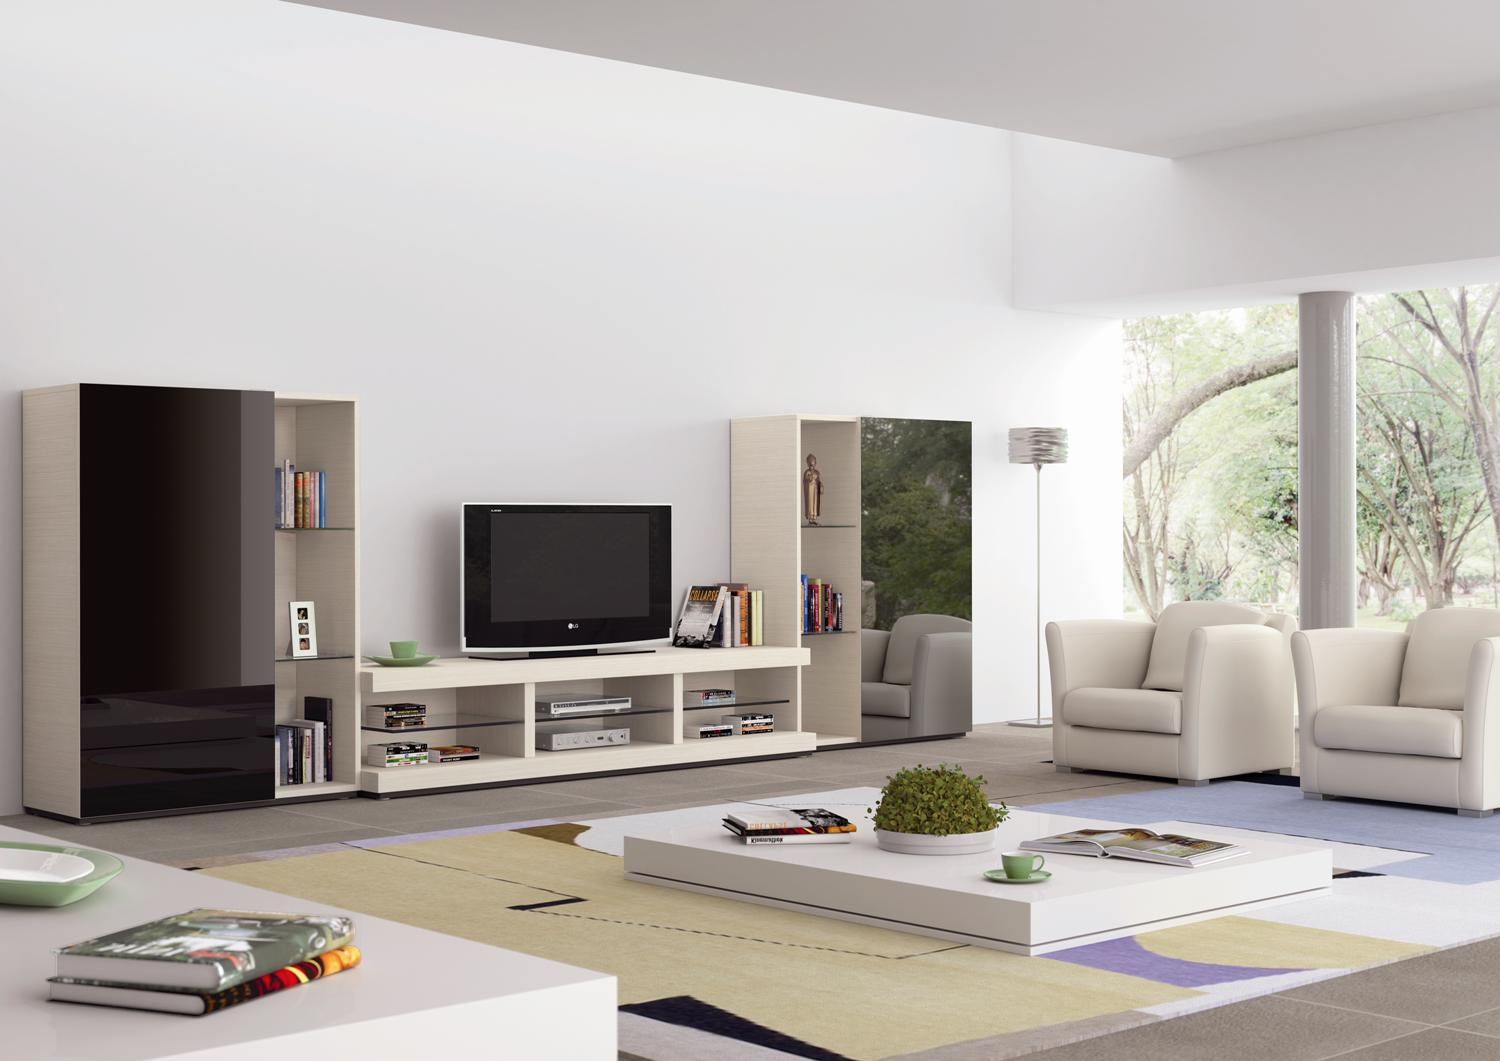 Muebles modernos ideas designs of home and garden - Muebles para television modernos ...